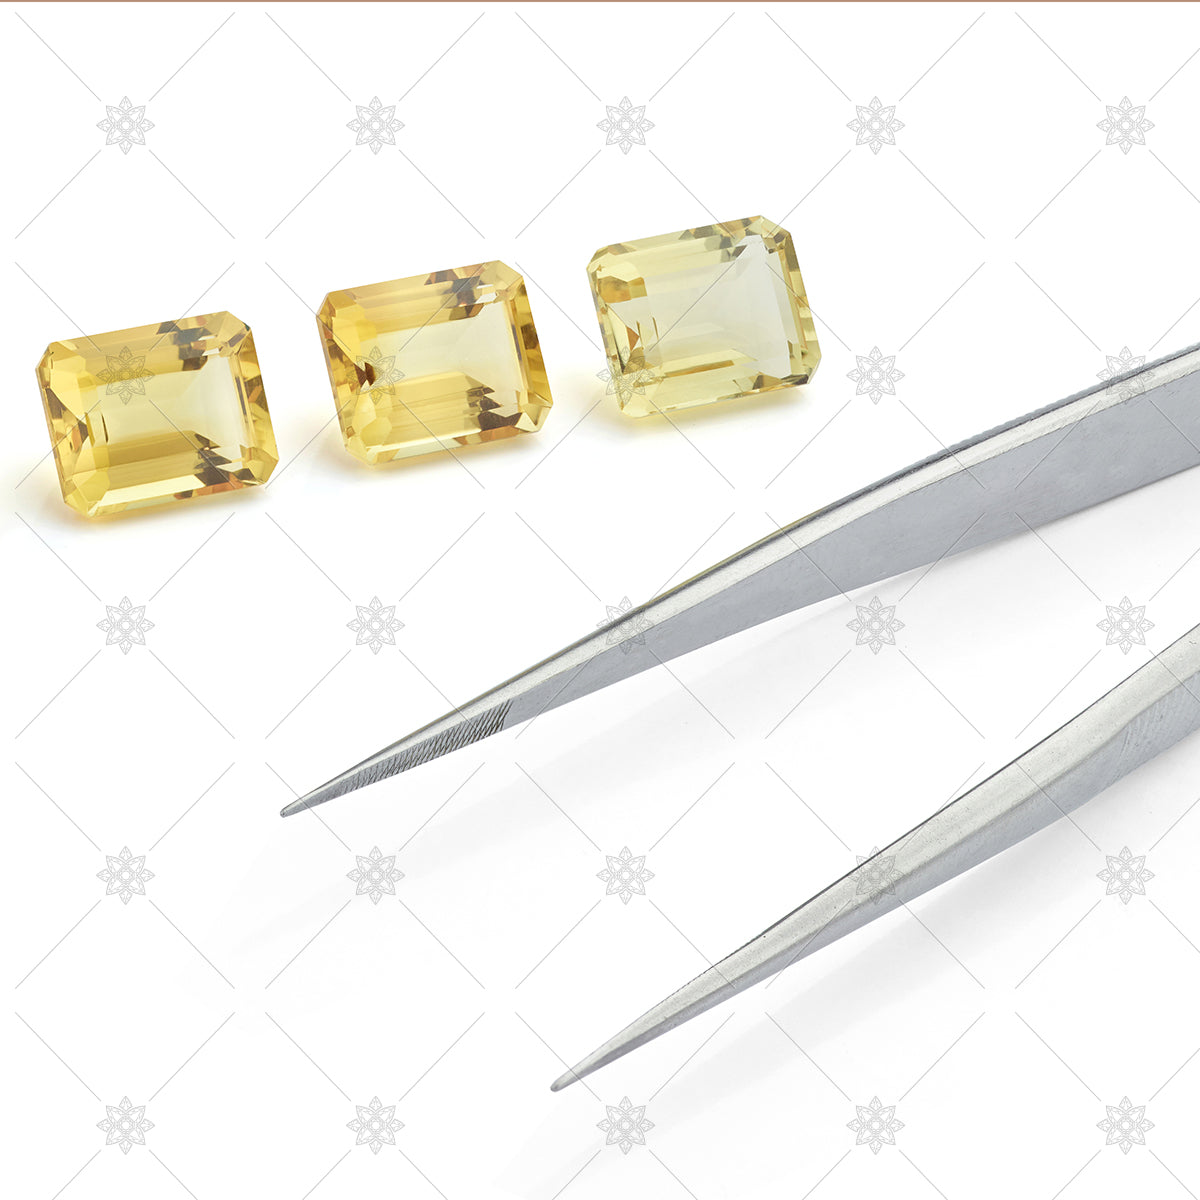 Citrine Gemstones with Tweezers